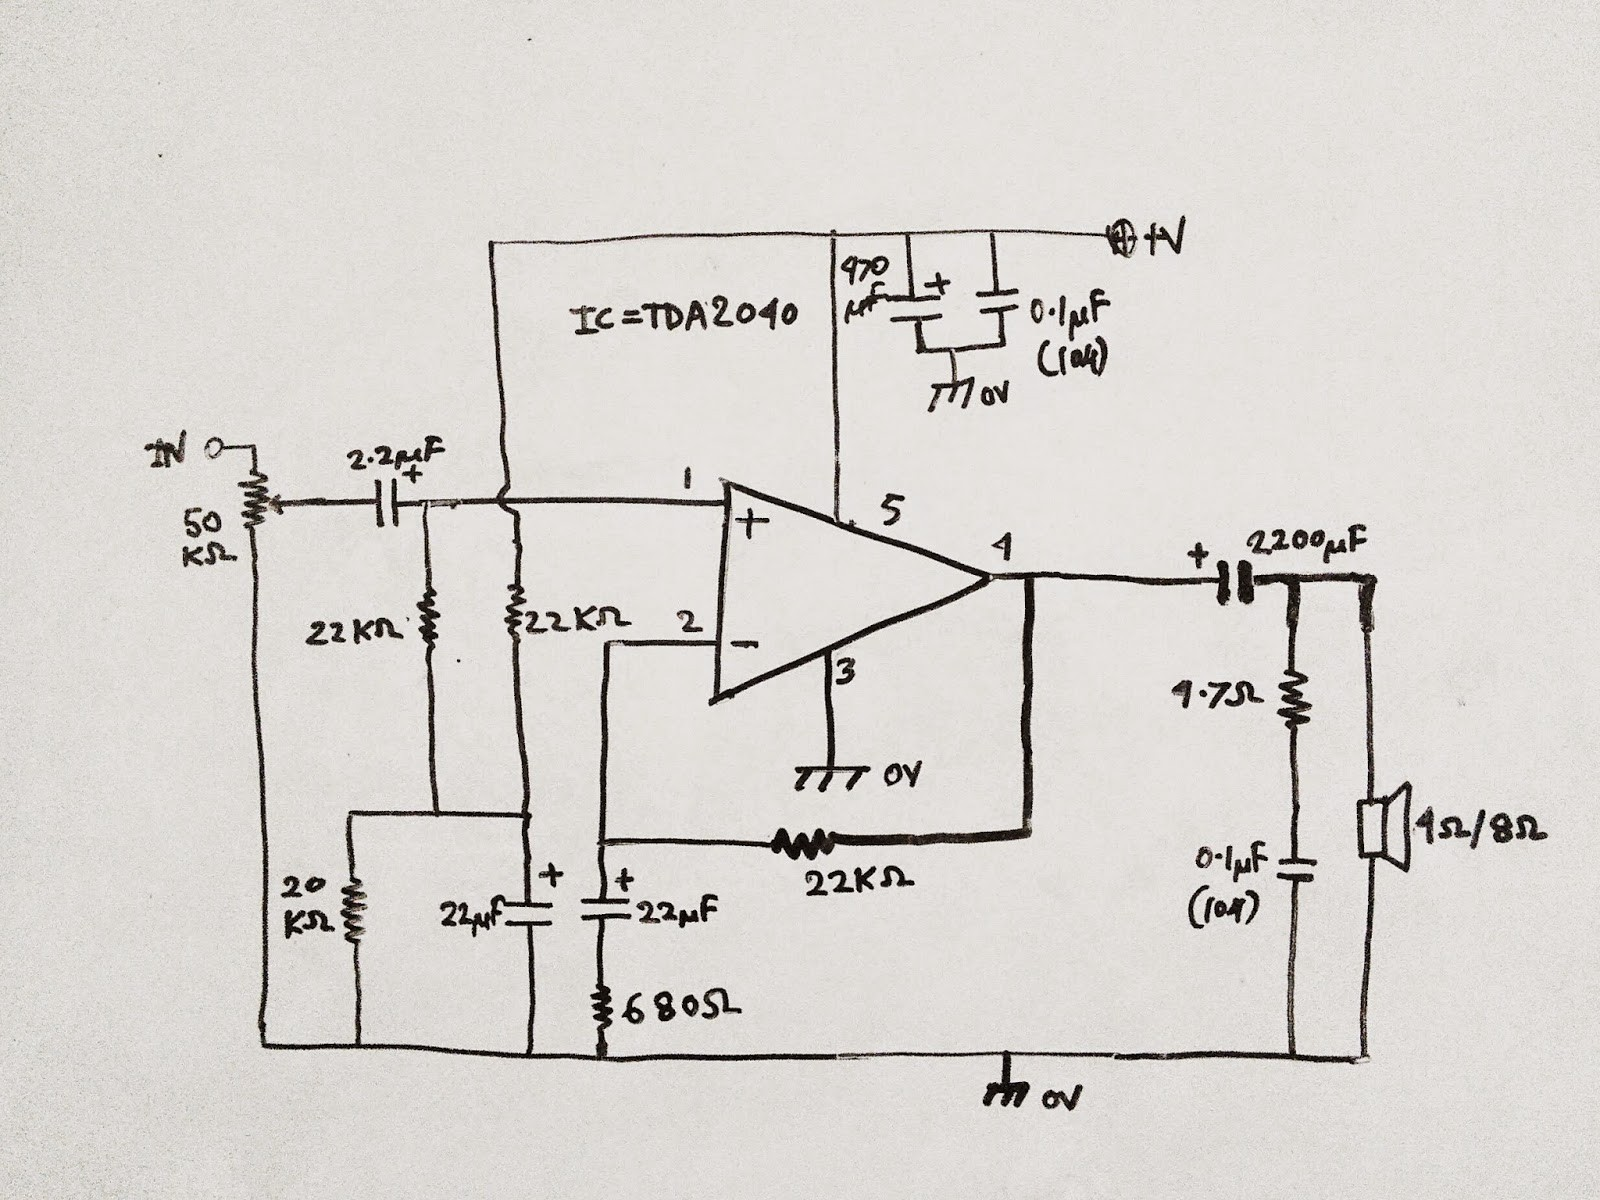 Another Amplifier Using TDA2040